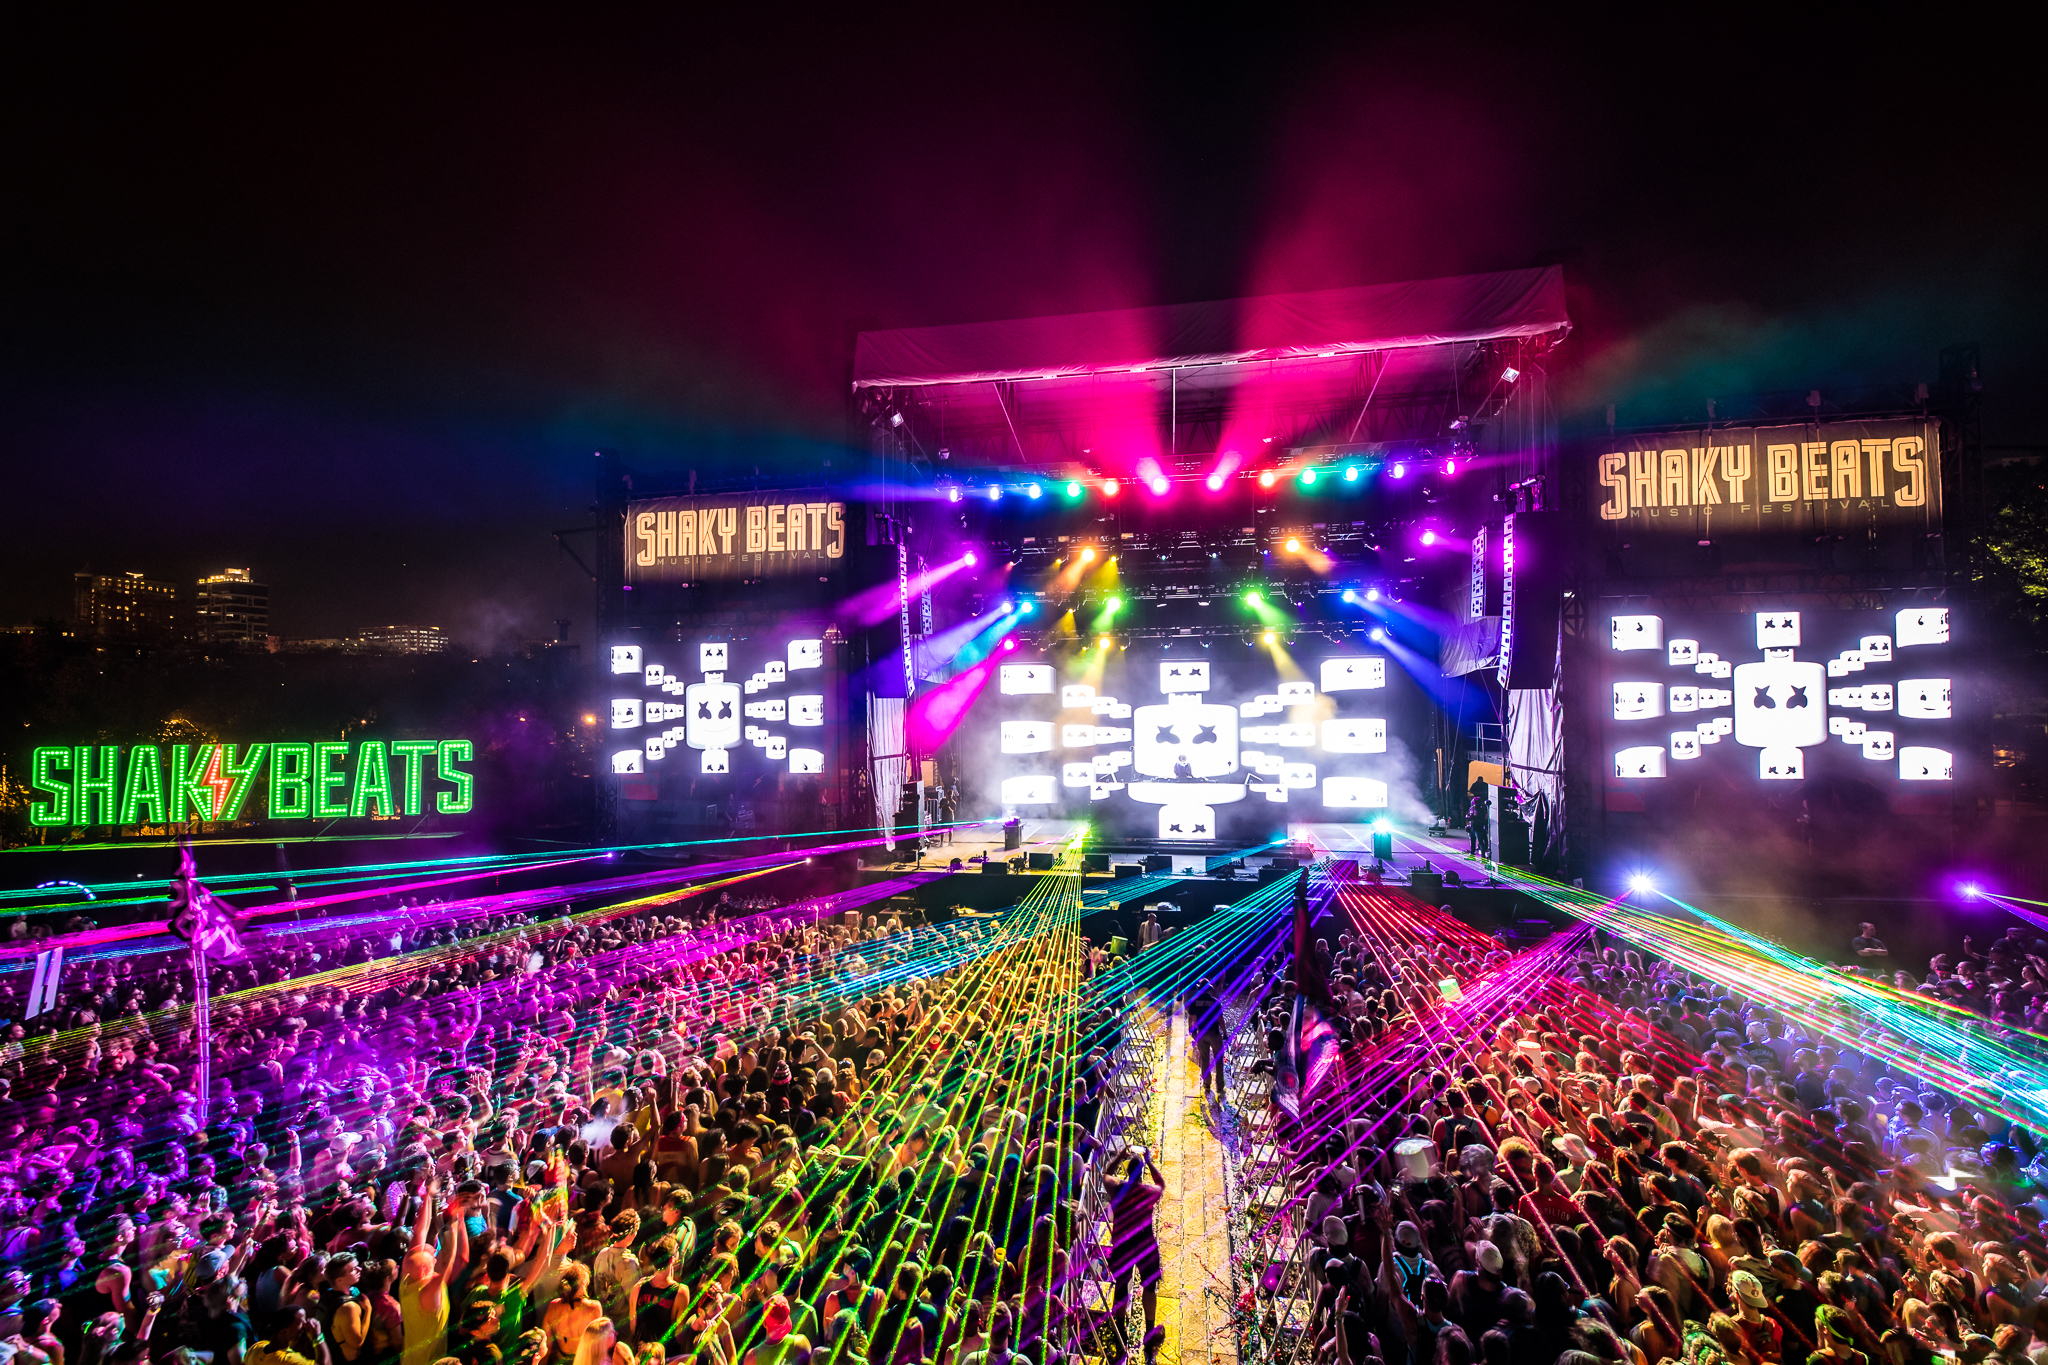 Photo credit: Courtesy of aLIVE Coverage for Shaky Beats Music Festival